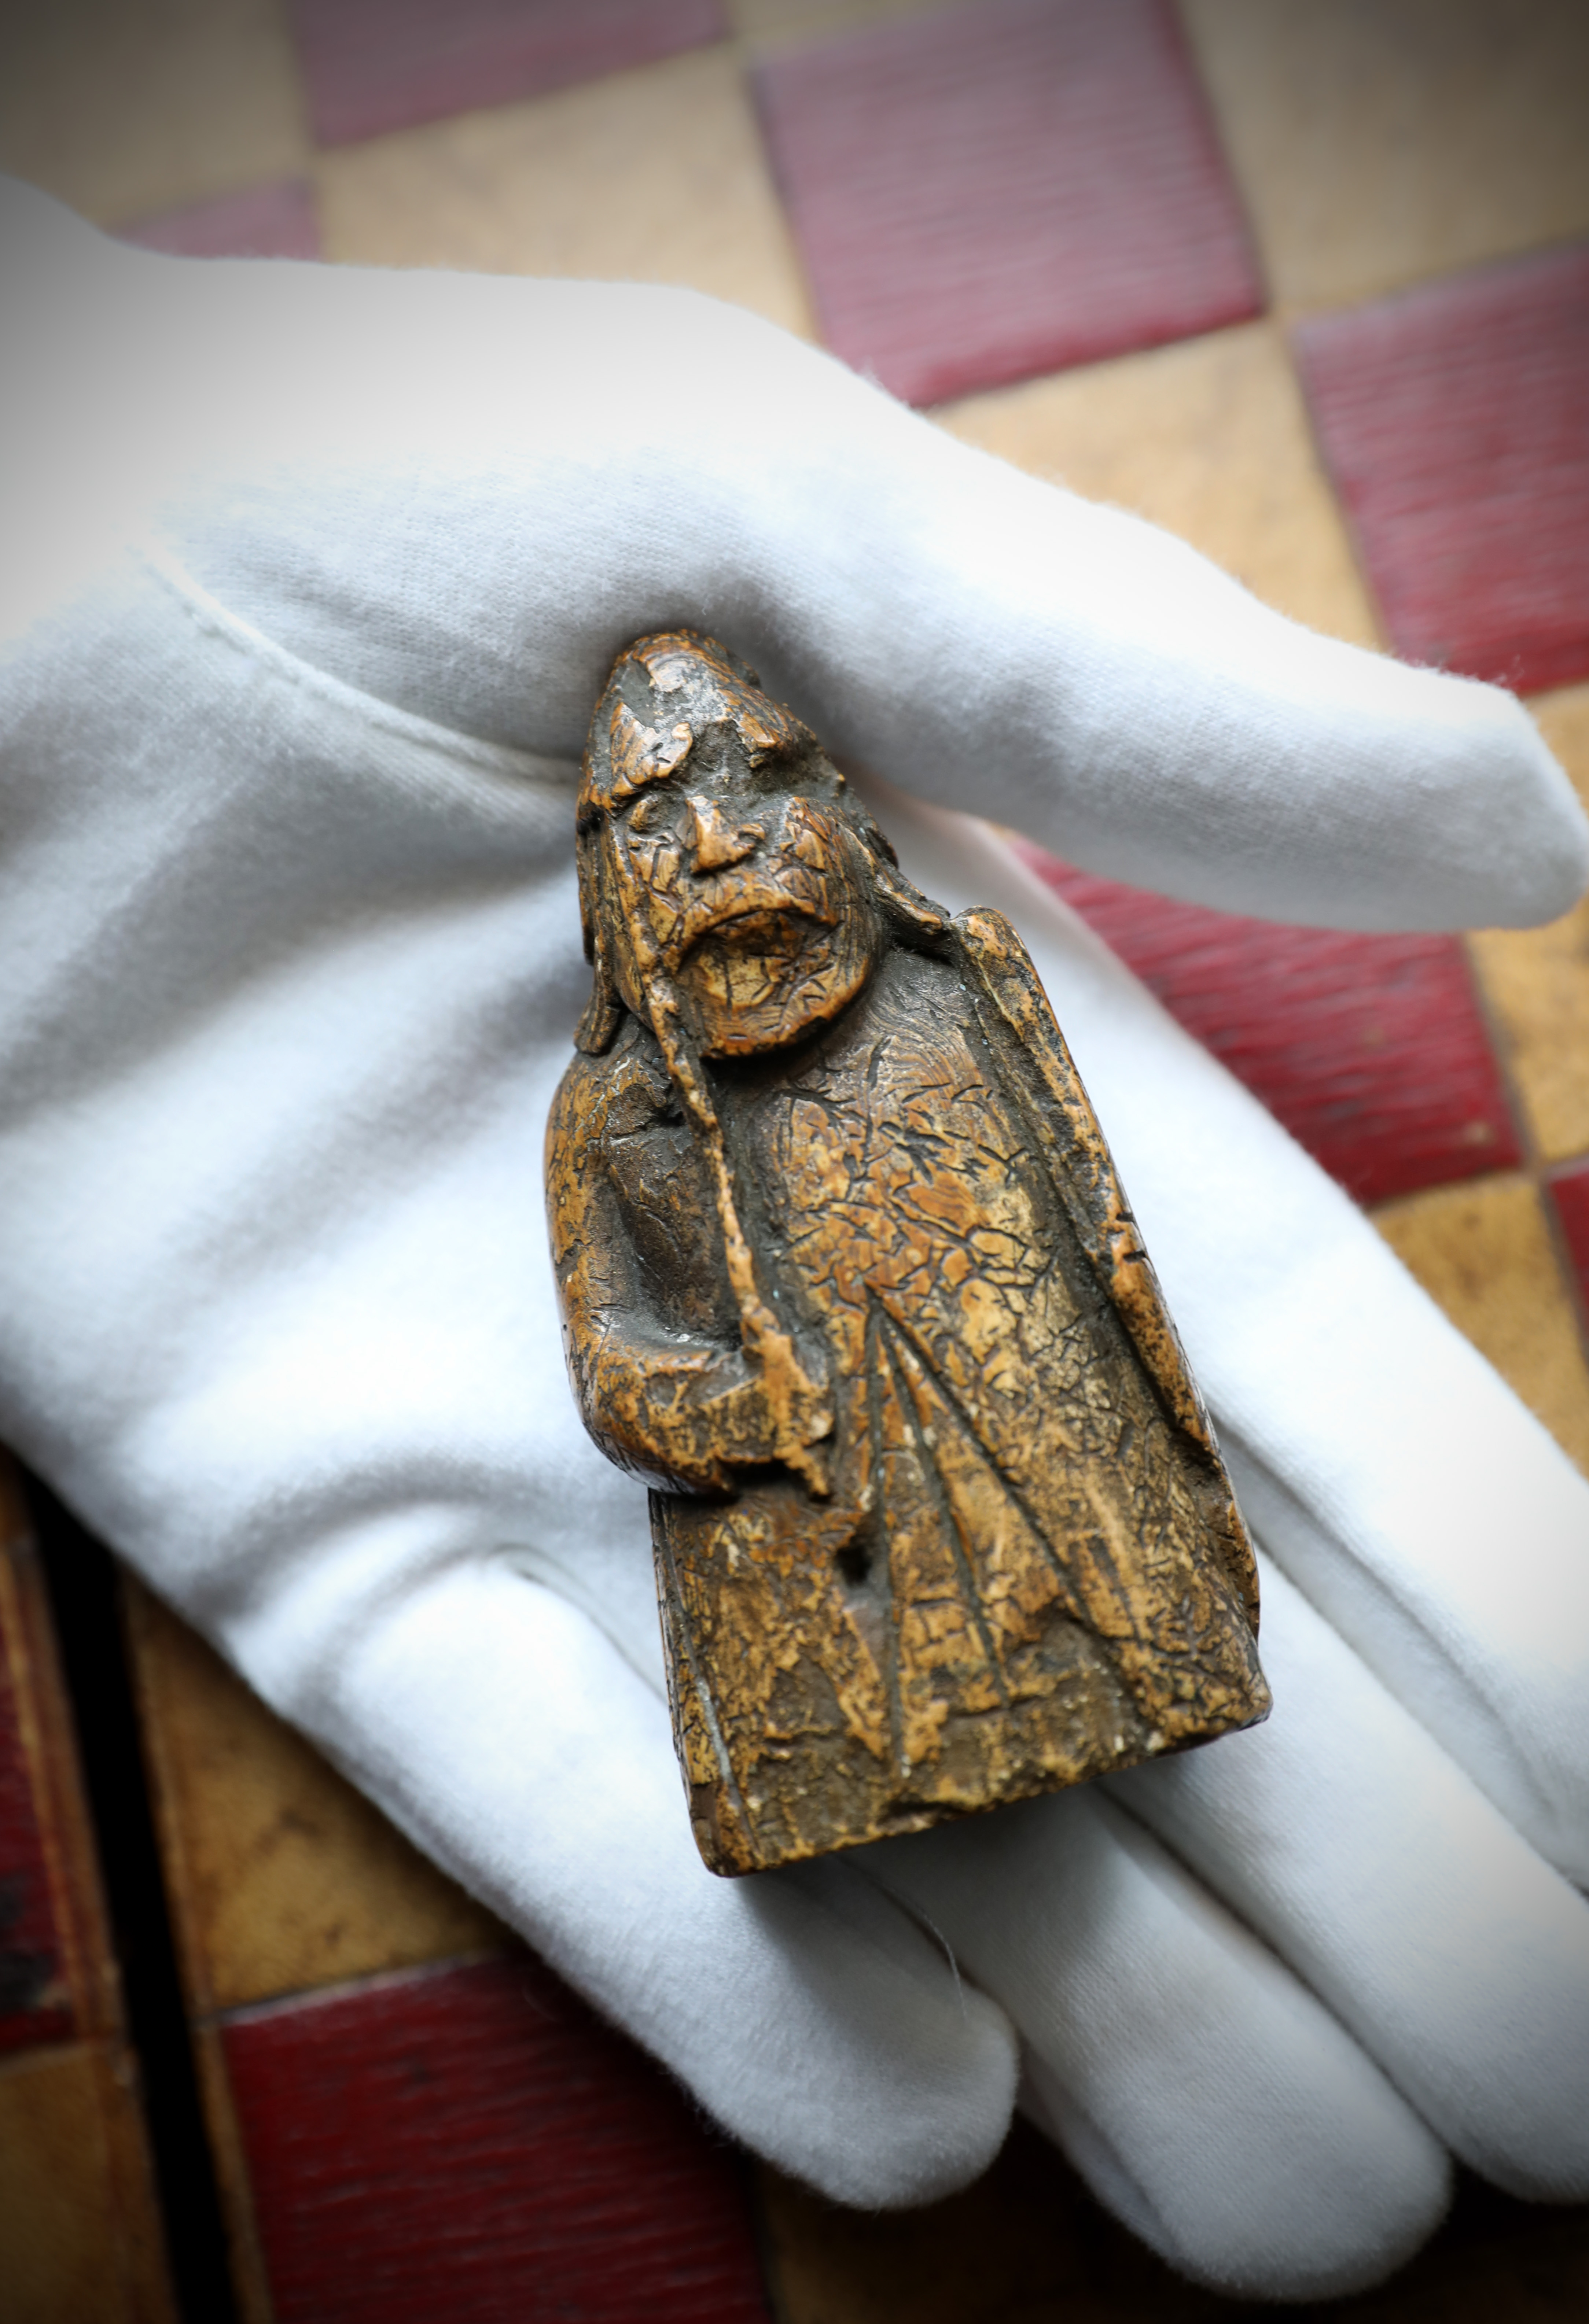 A newly discovered Lewis Chessman at Sotheby's